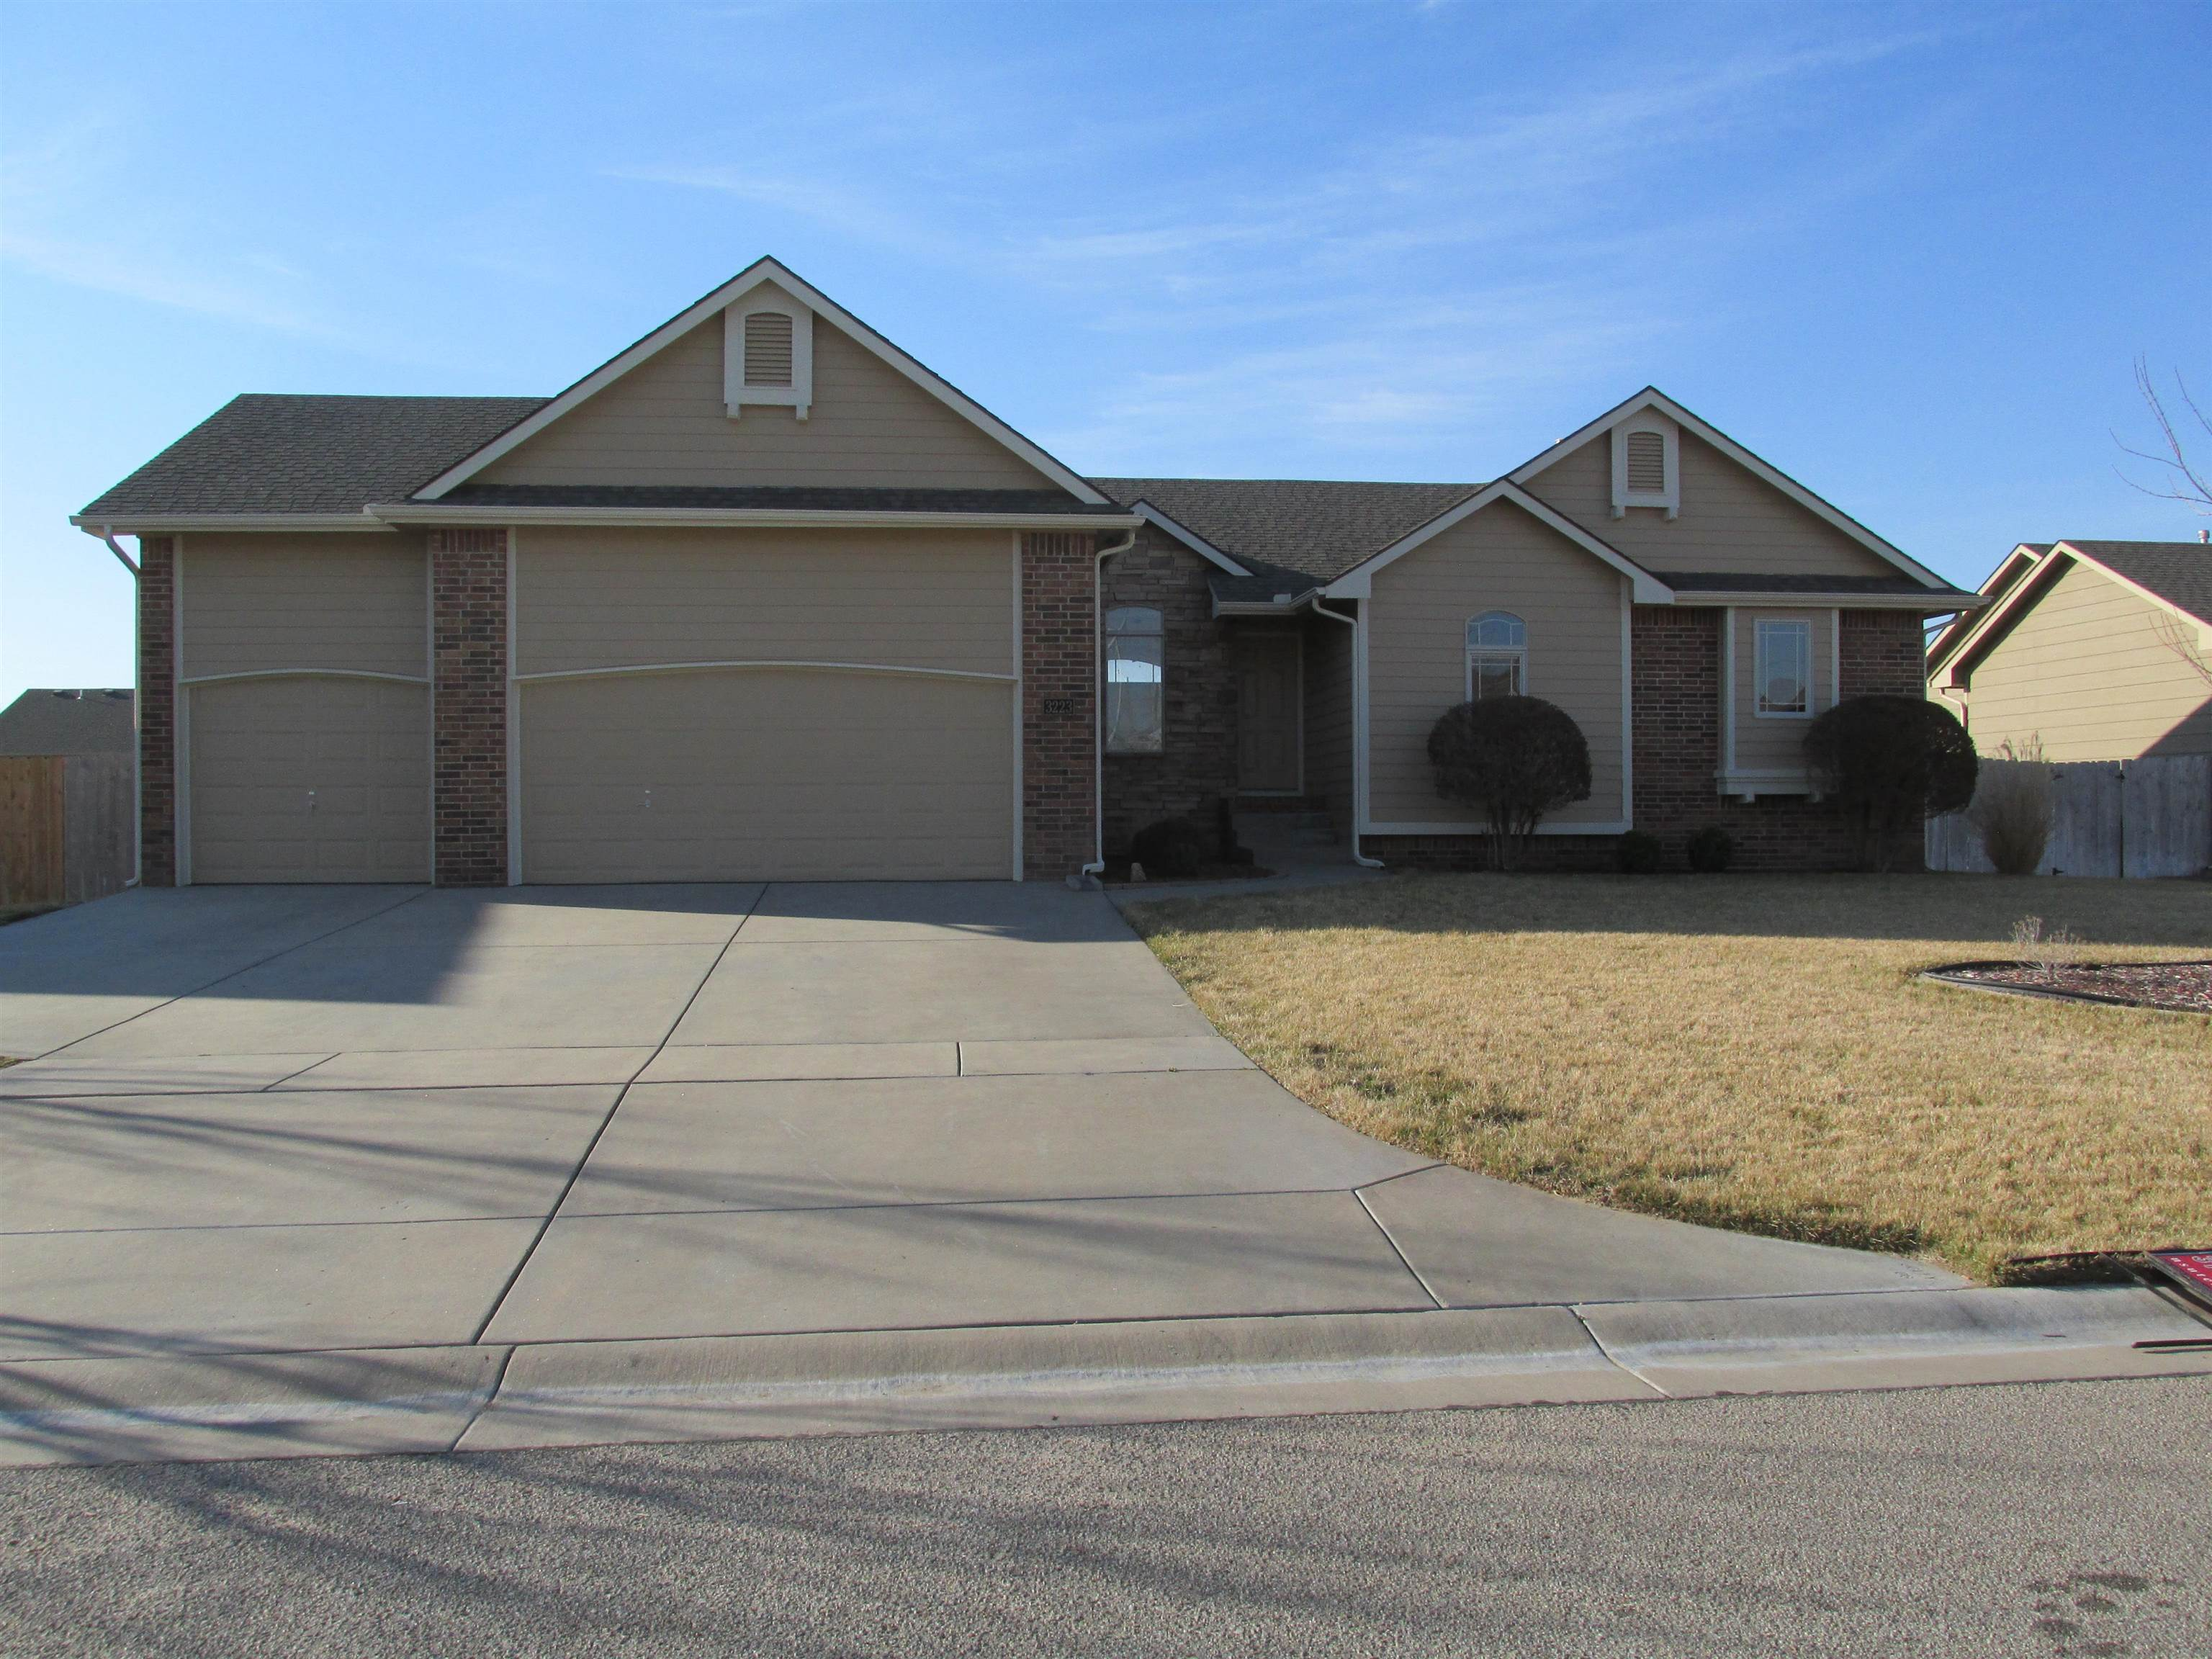 Great 4 Bedroom, 3 bath ranch**The hardwood floors in the kitchen, dining area and entryway have bee